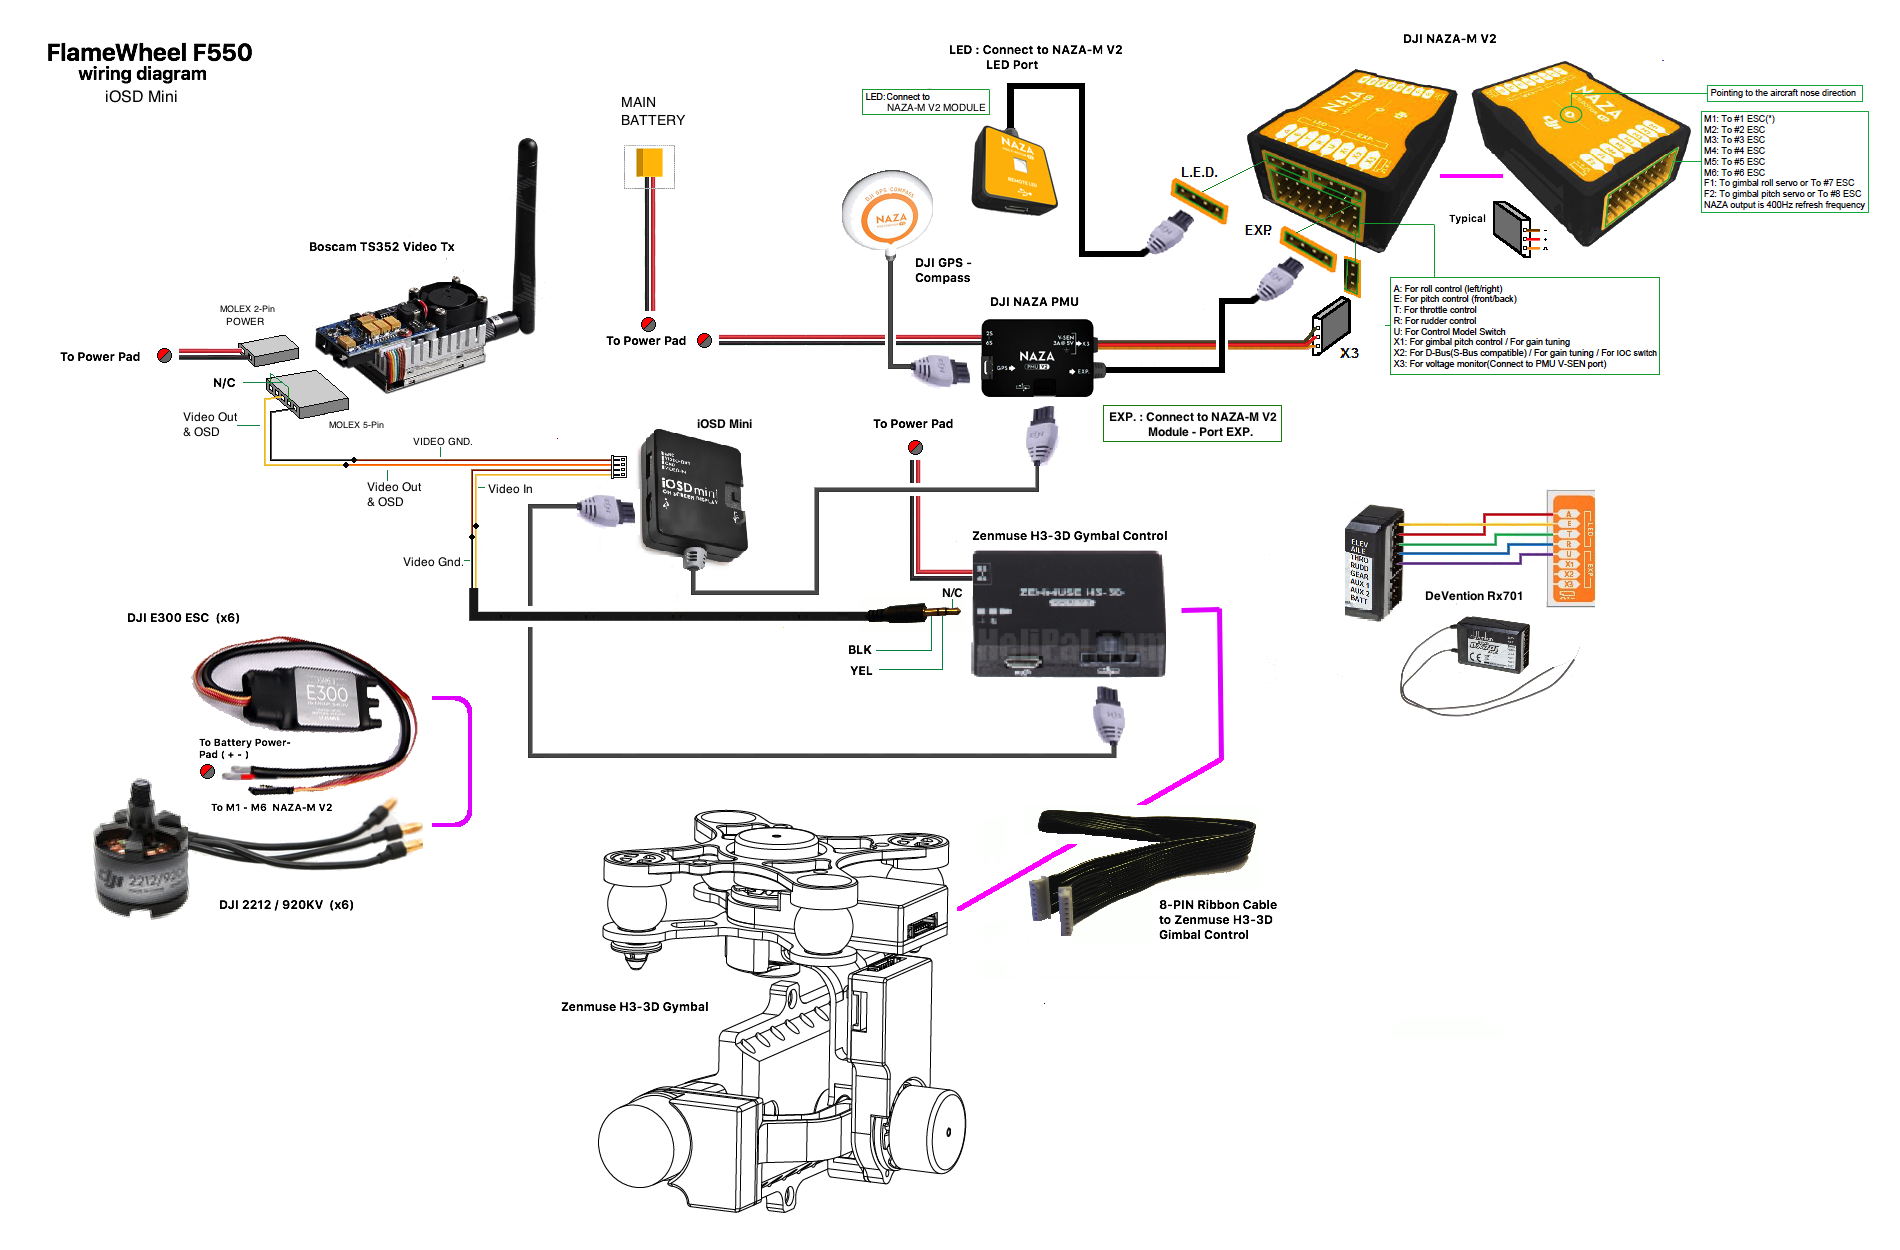 121842mdnm8eebnmmm2m46 dji flame wheel f450 and f550 owners thread dji forum naza wiring diagram at gsmx.co